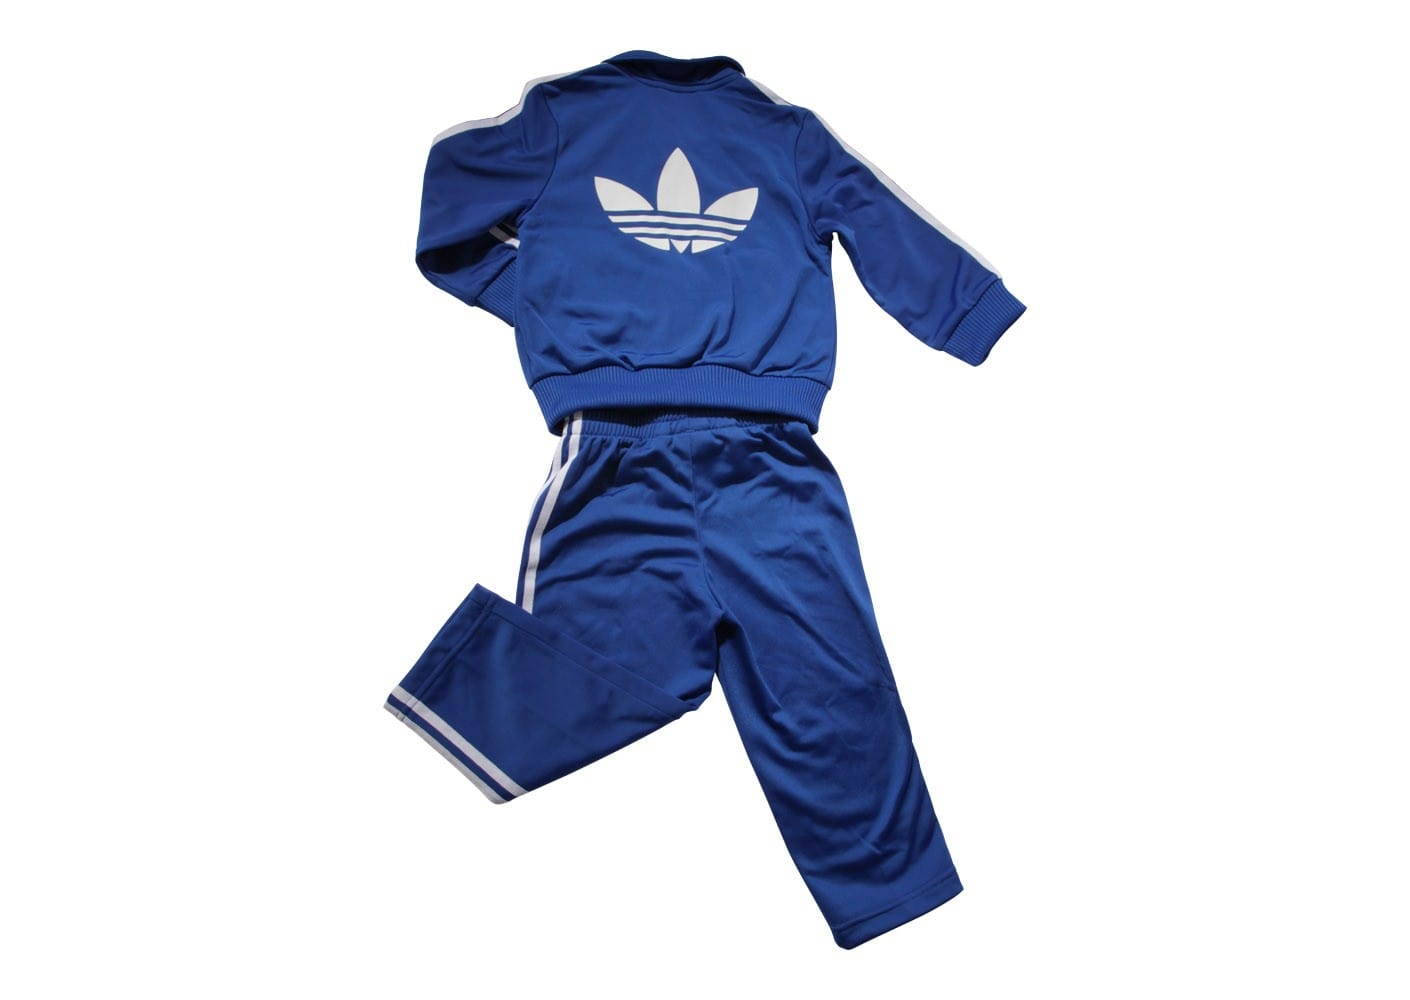 survetement adidas enfant. Black Bedroom Furniture Sets. Home Design Ideas